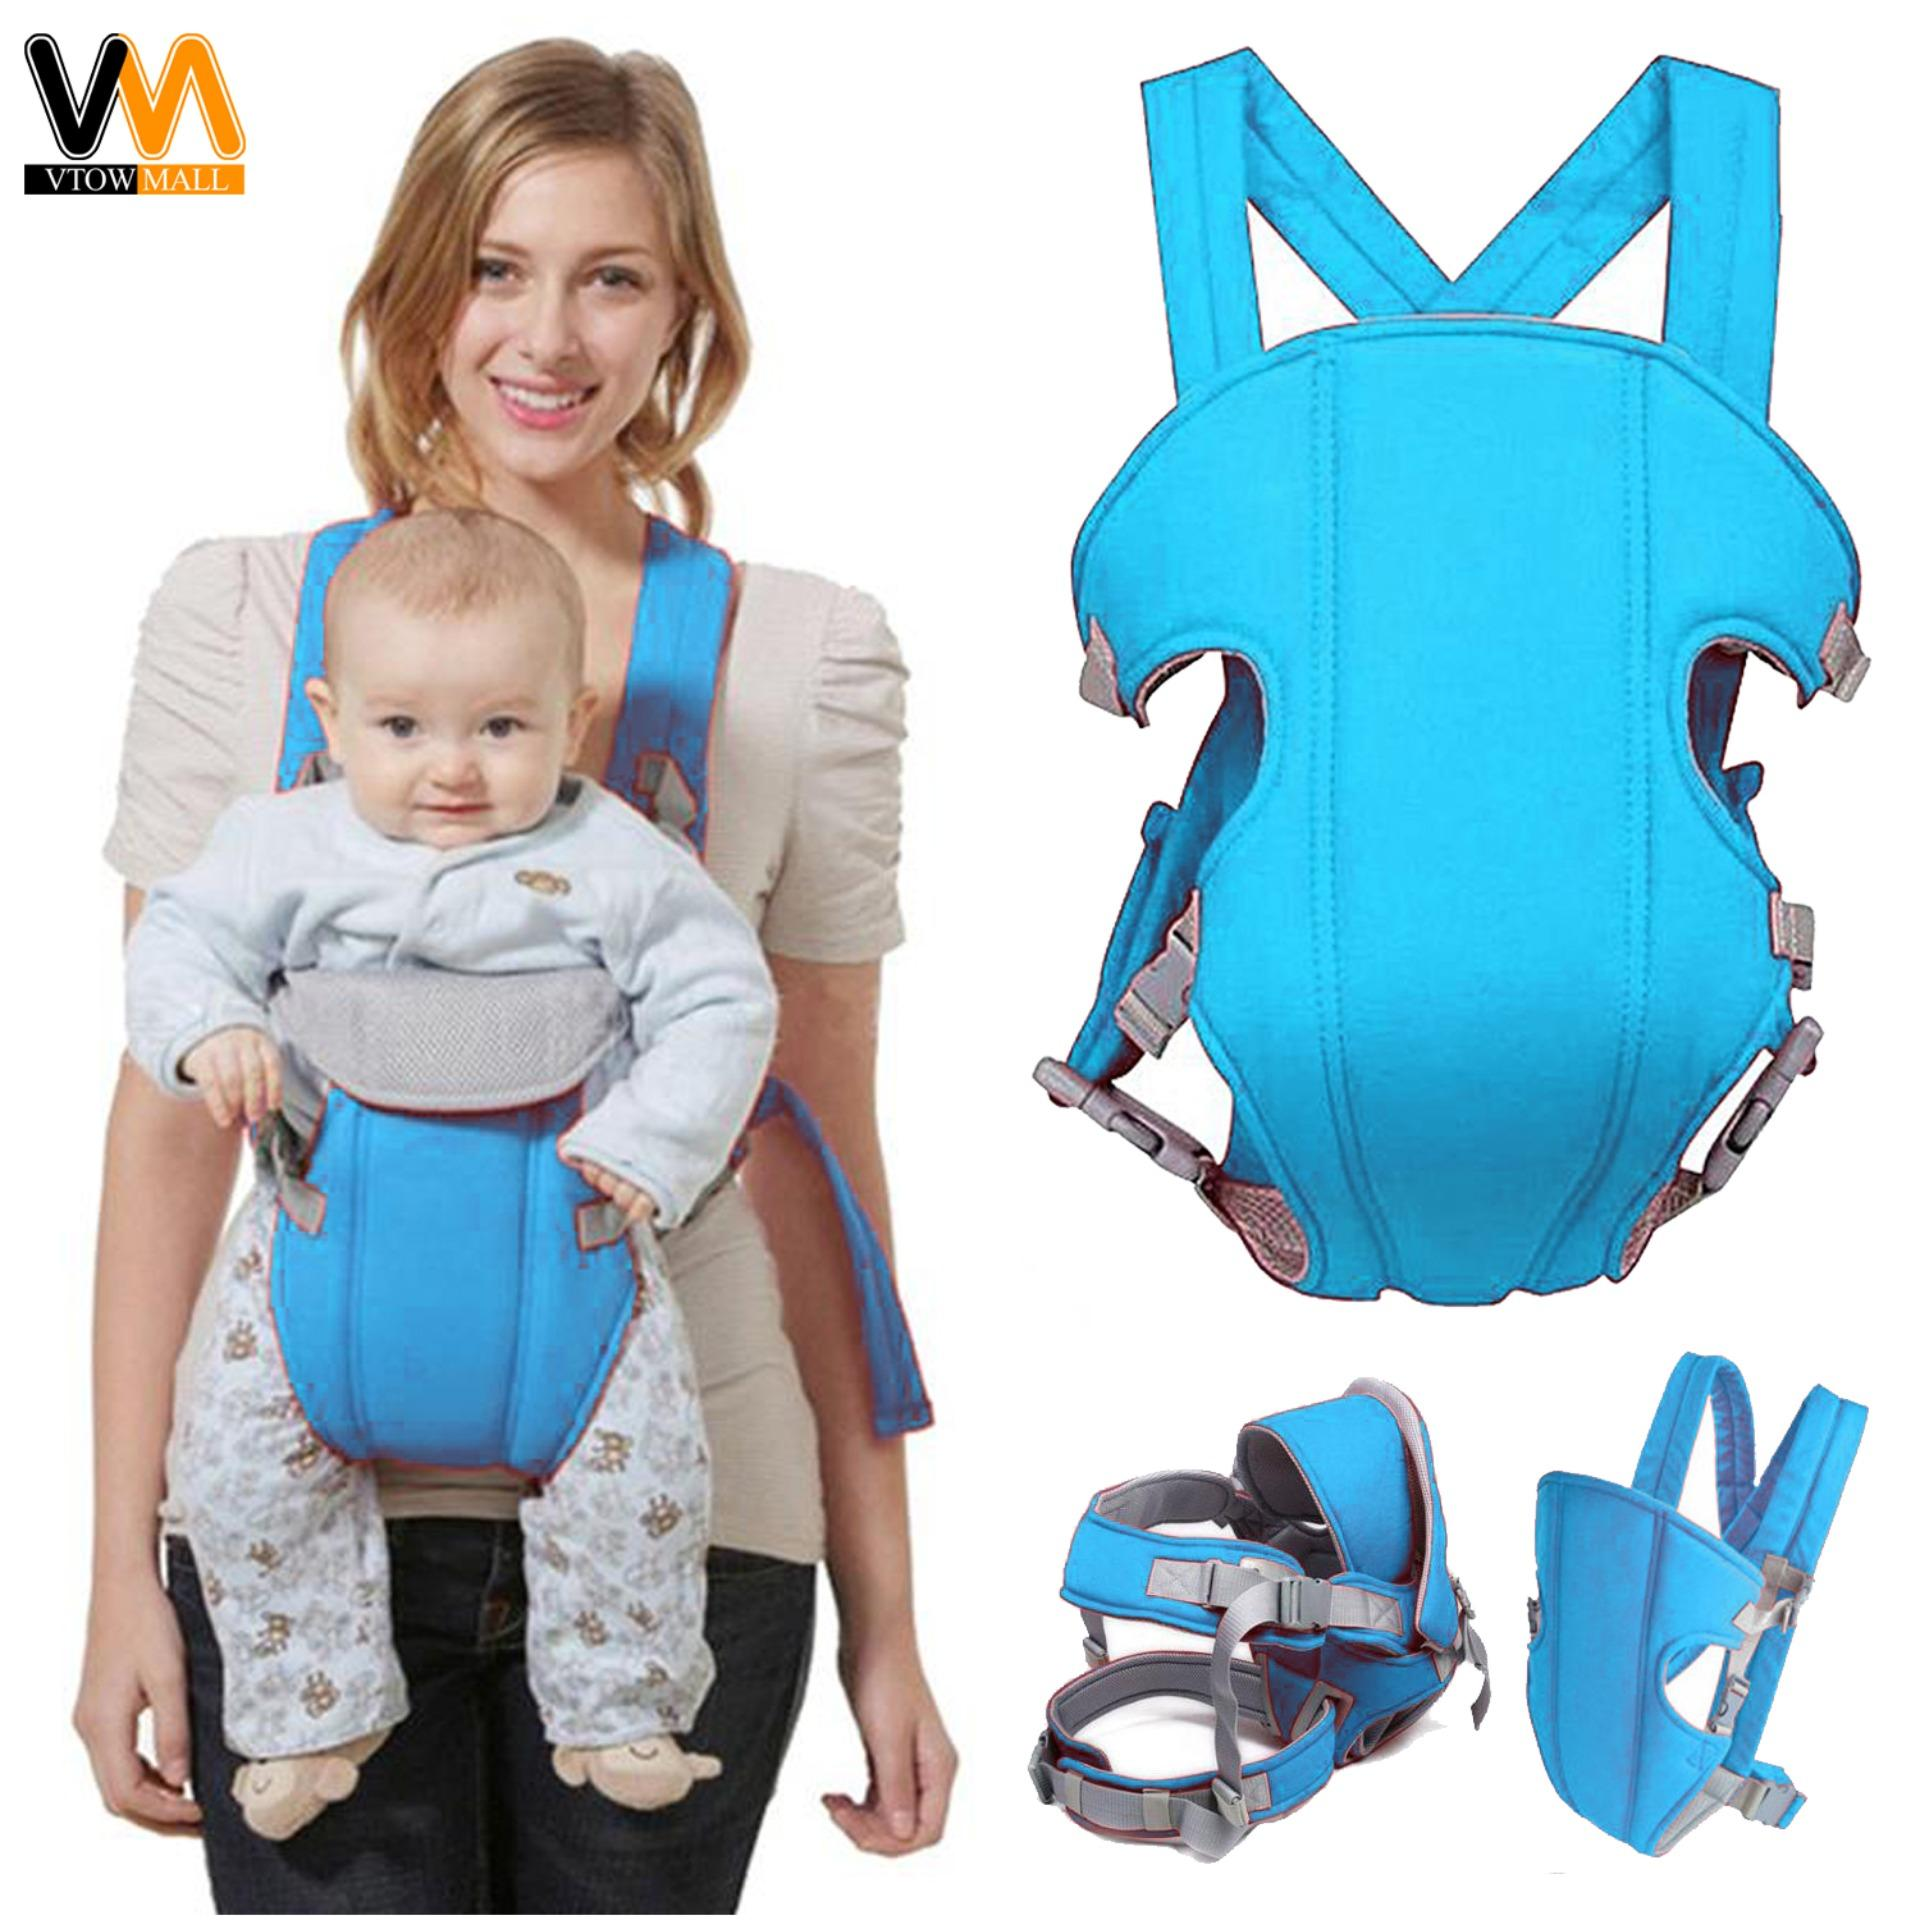 Looks - How to fisher wear price baby carrier video